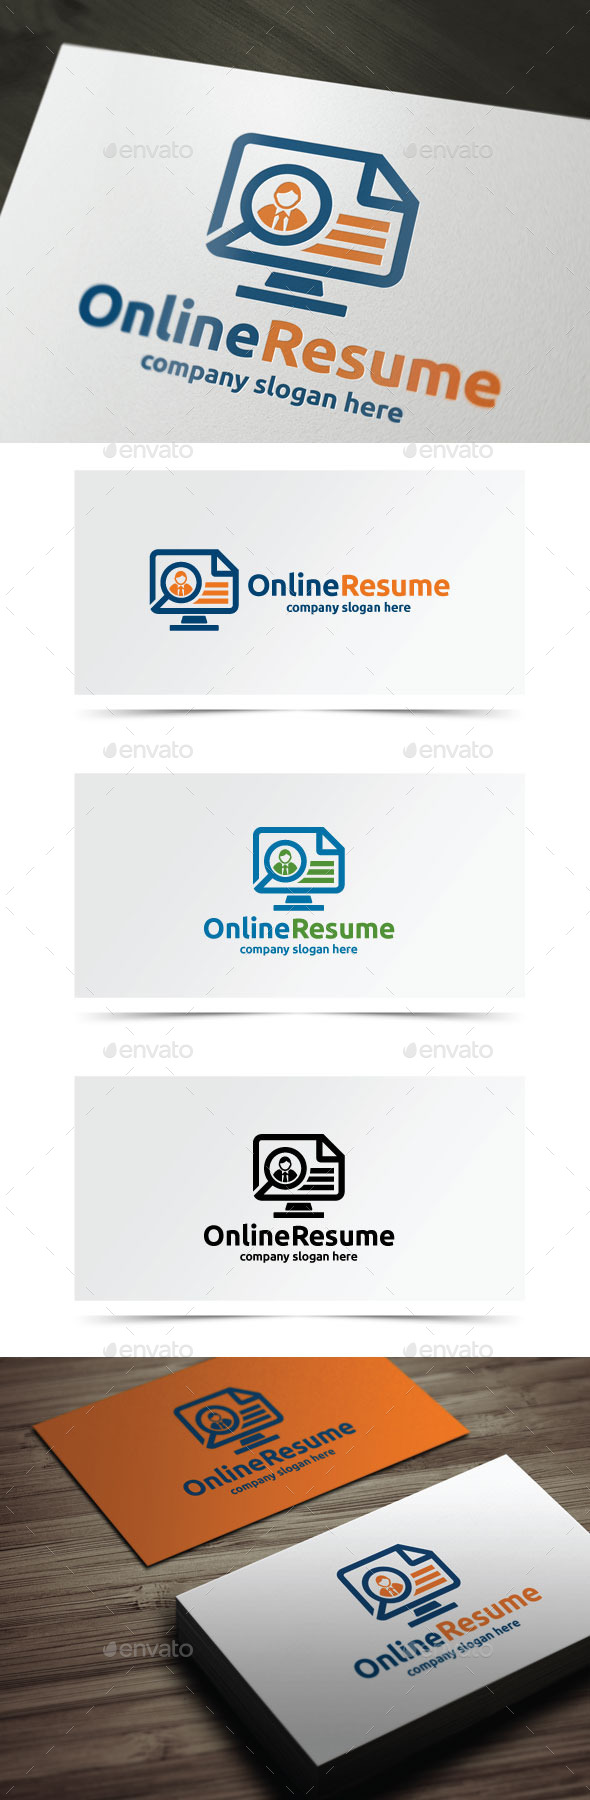 GraphicRiver Online Resume 9264256